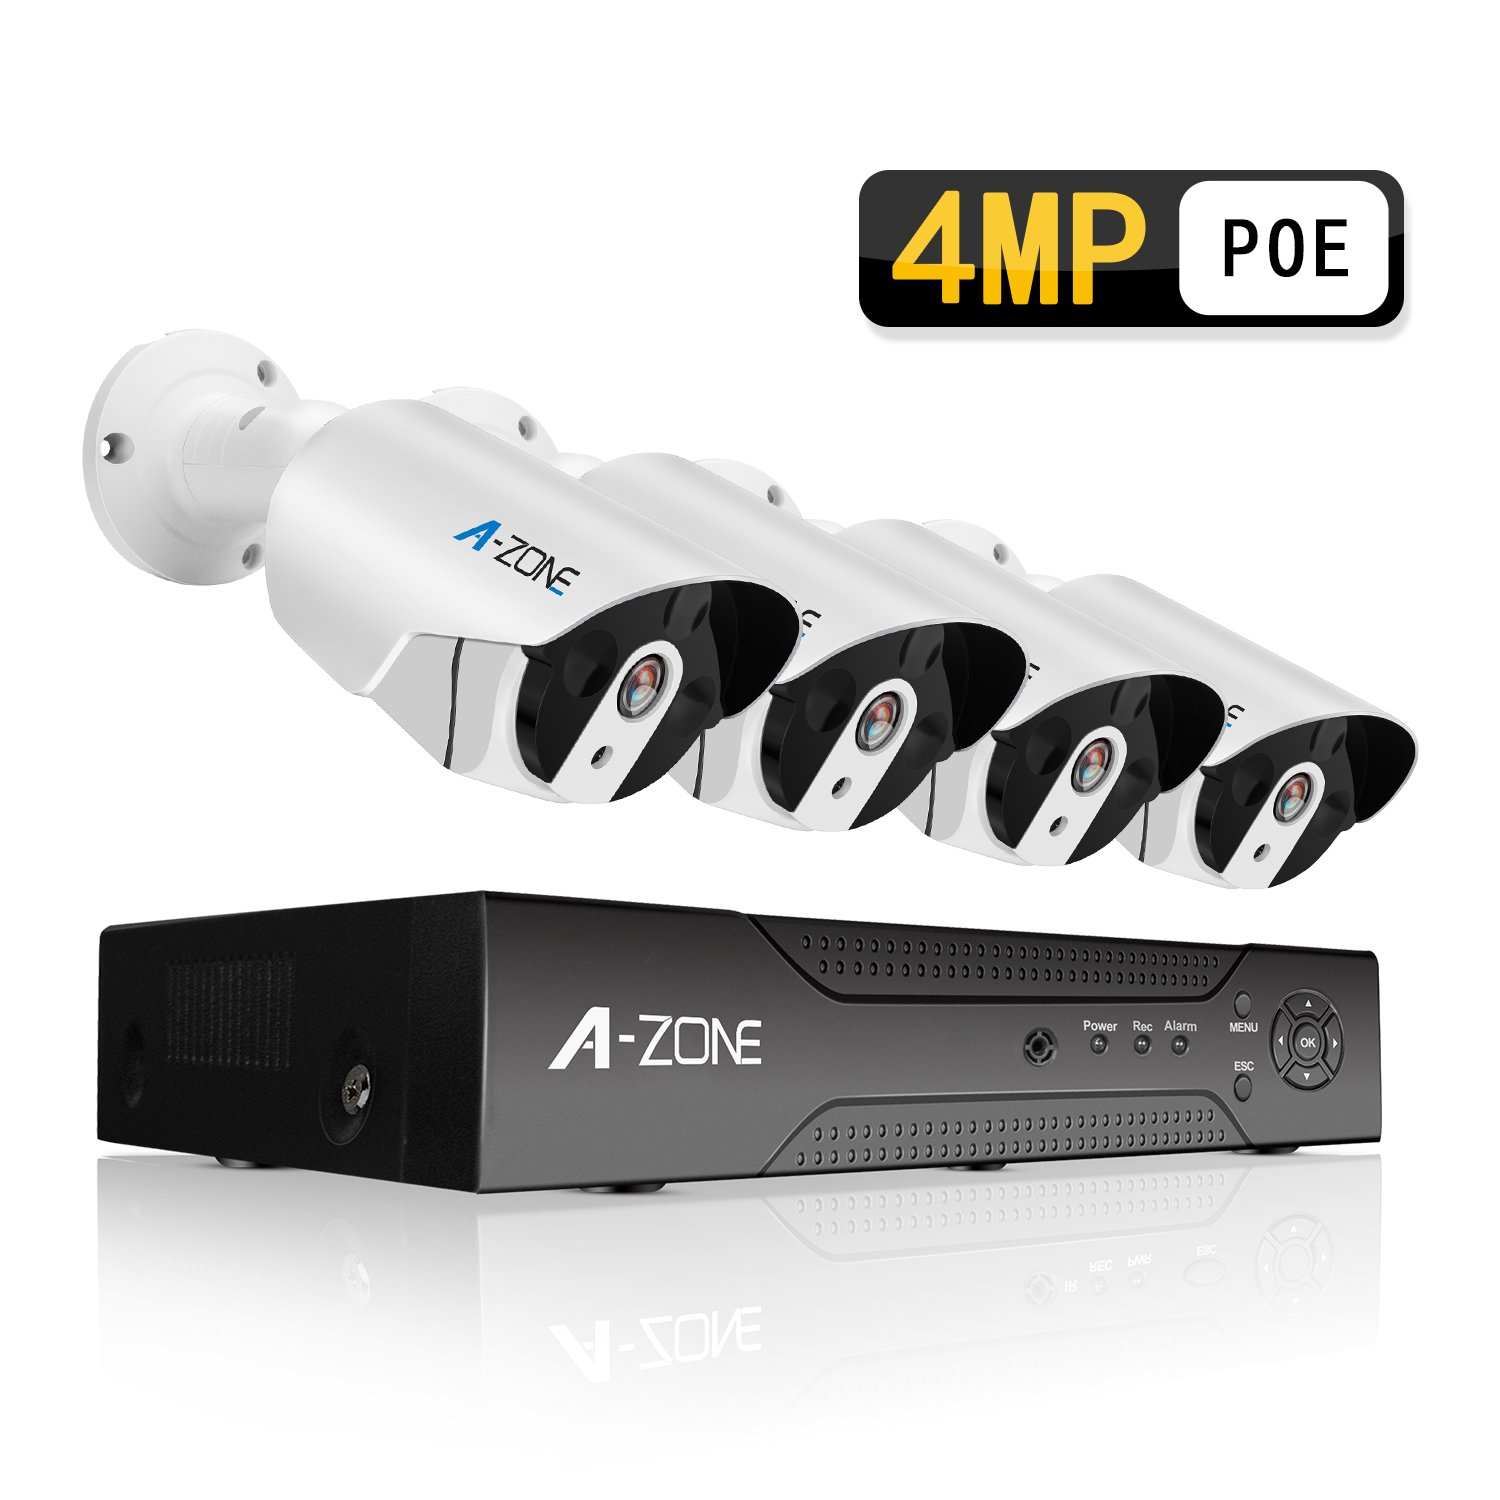 Poe Camera System A Zone Home Ip Security Alarm 5 Circuit Using Cmos Ic 4 Megapixels Super Hd 2560x1440 Channel Nvr With Bullet Cameras 24 7